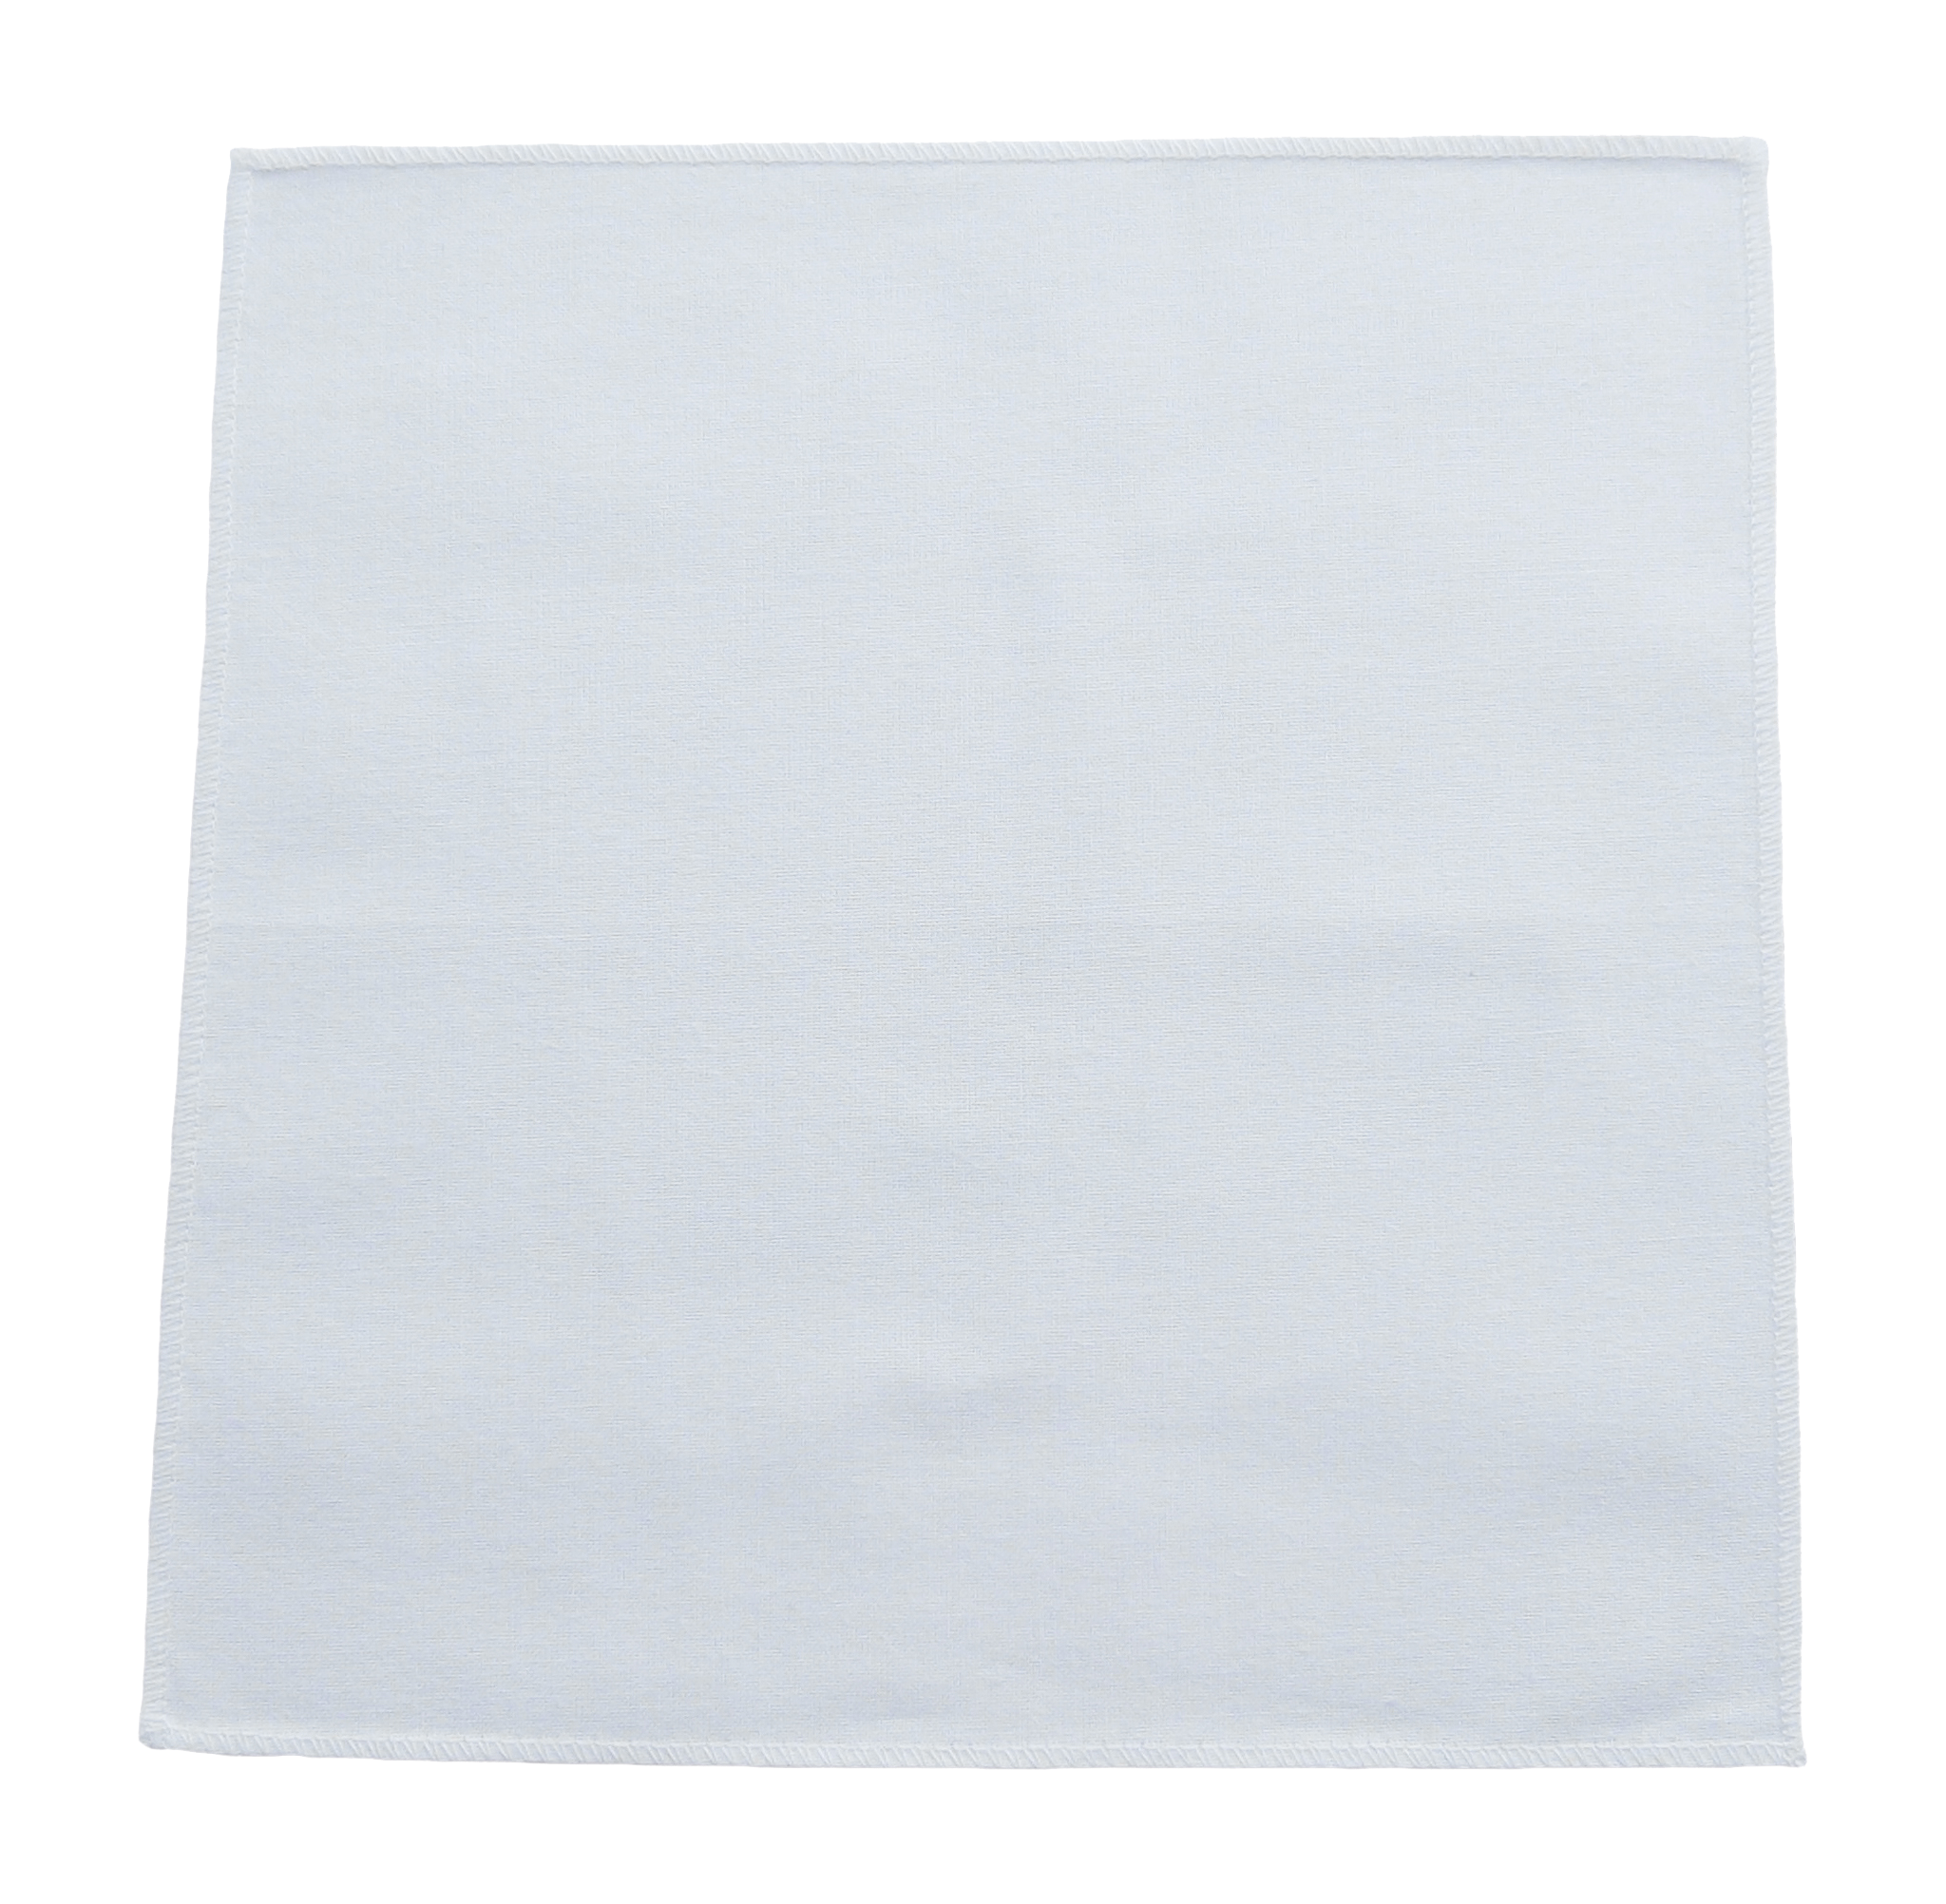 Napkin clipart handkerchief. Png transparent images all